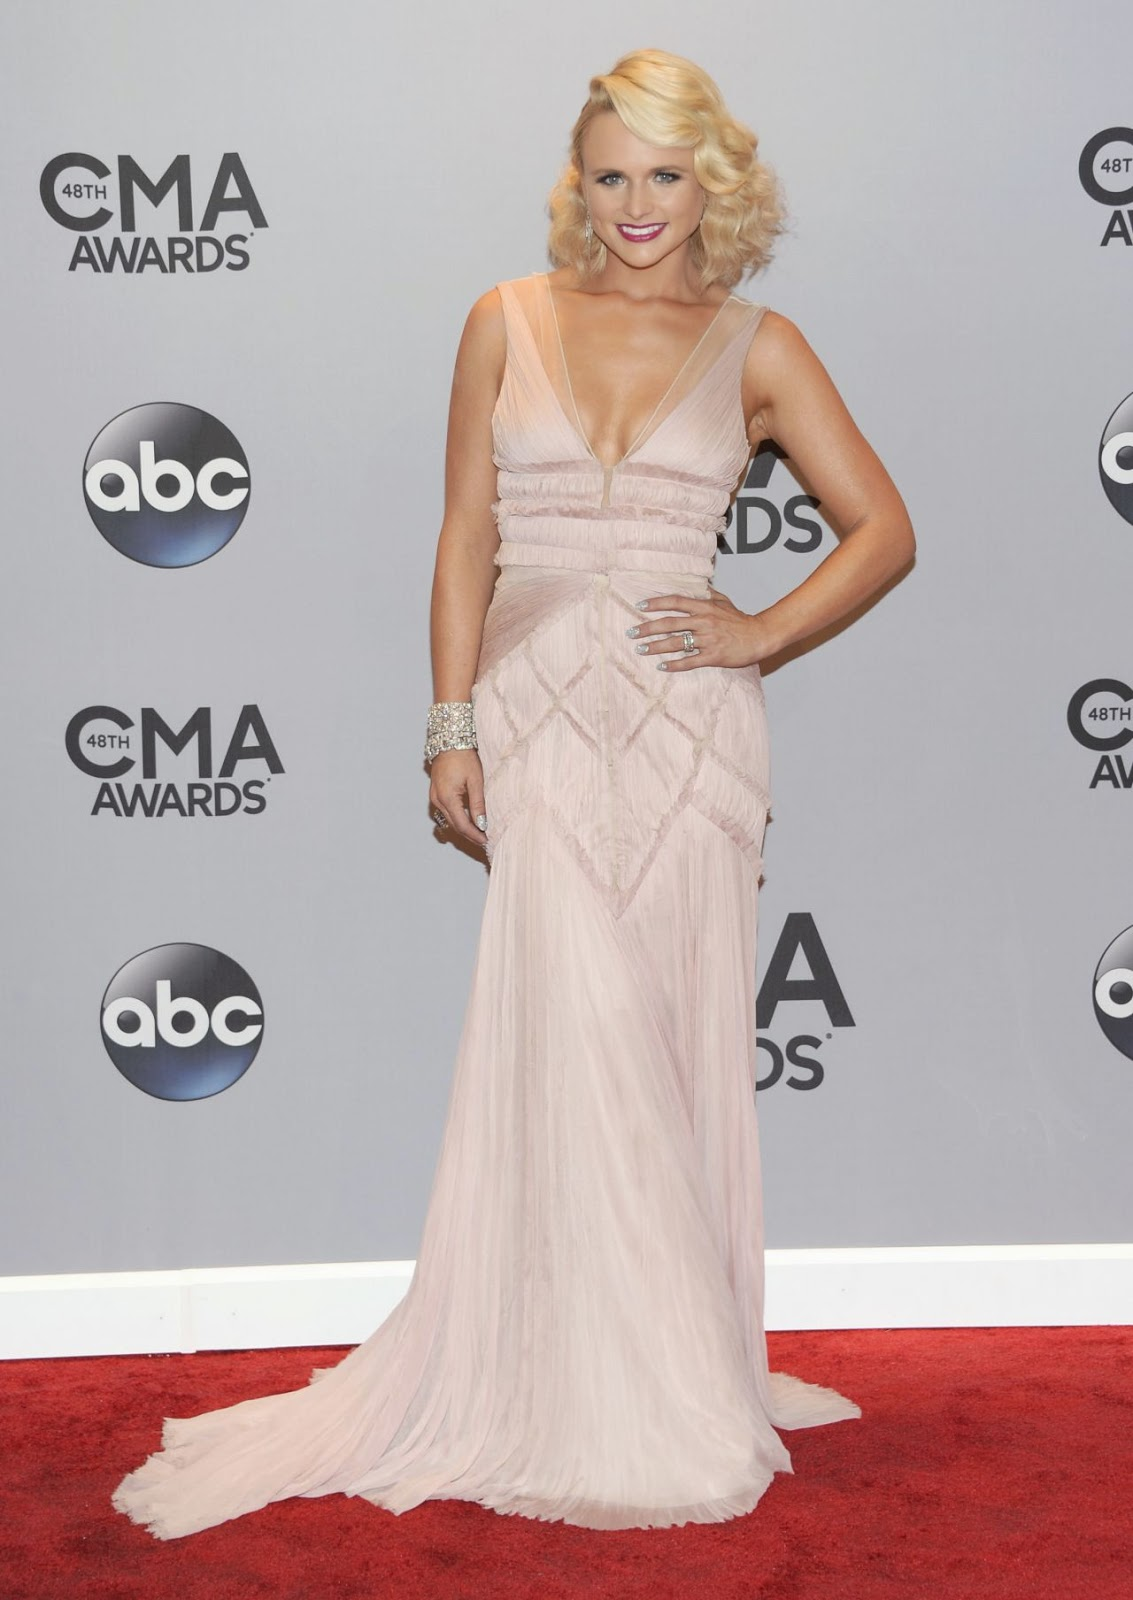 Miranda Lambert - Best Dressed Celebrities at the 2014 Annual CMA Awards in Nashville